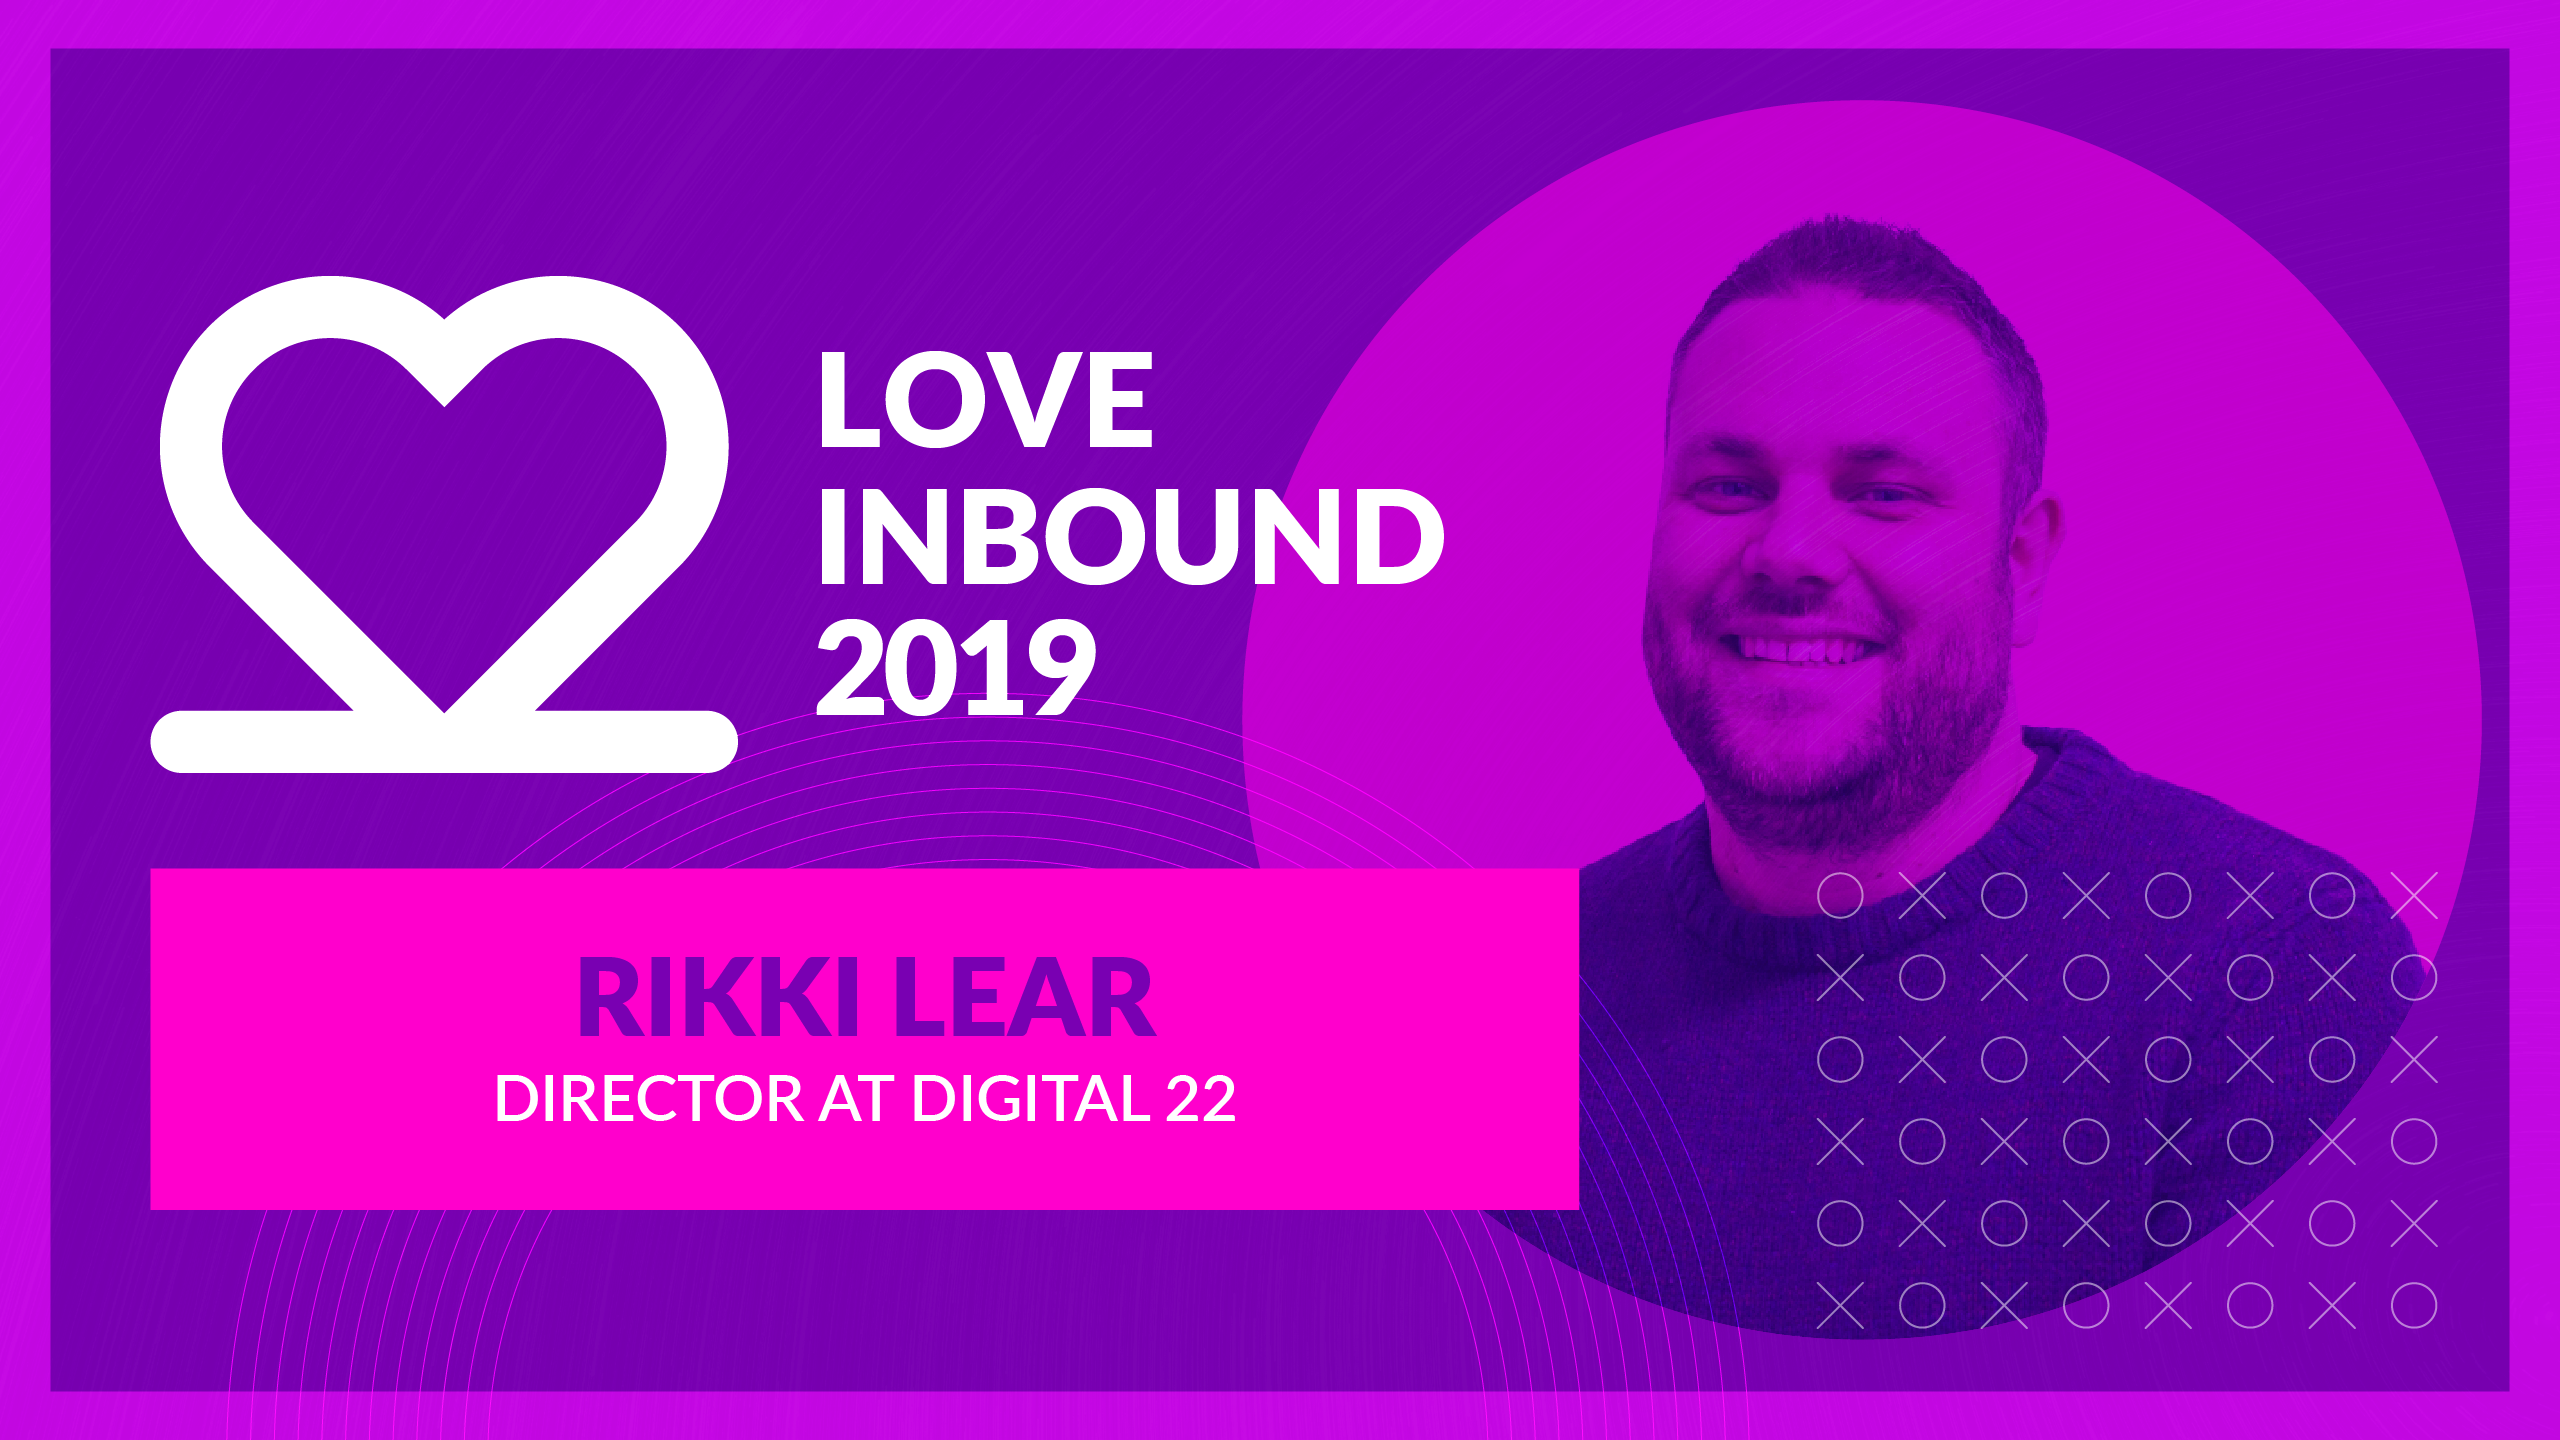 LOVE INBOUND 2019 - SEO Tips and Advice with Digital 22's Rikki Lear